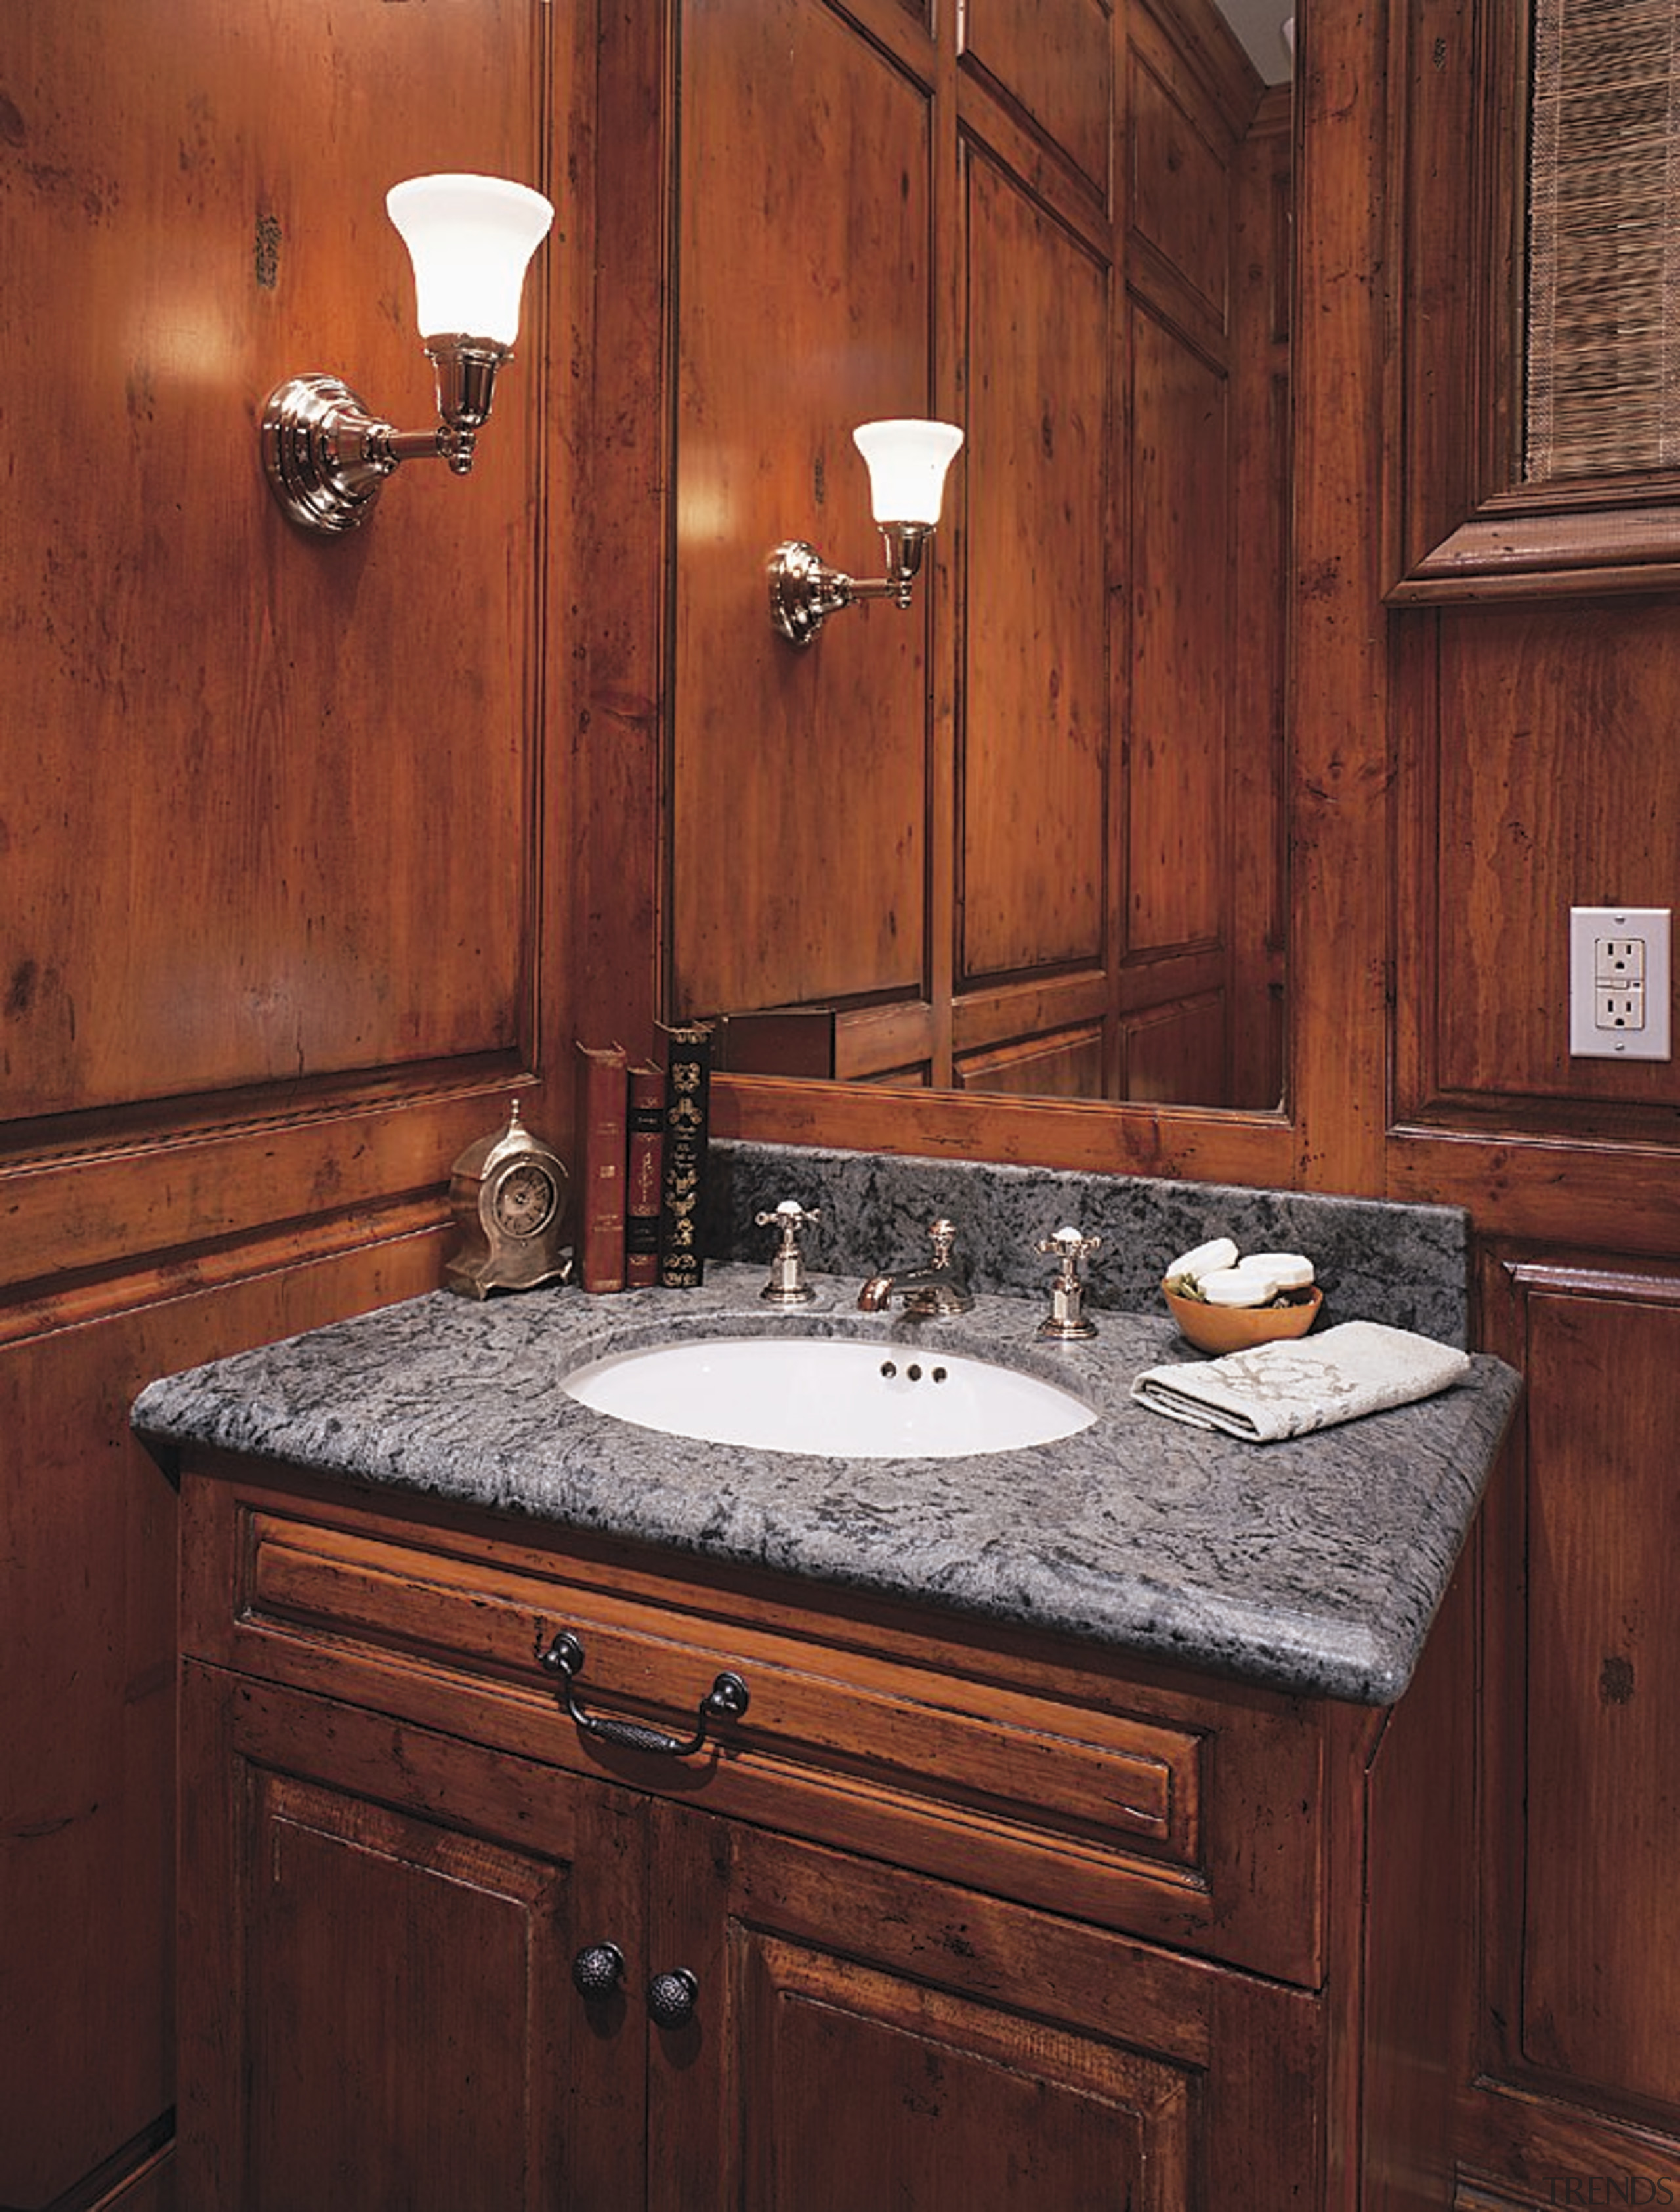 Close view of the hand basin - Close bathroom, bathroom cabinet, cabinetry, countertop, home, interior design, kitchen, room, sink, wood stain, red